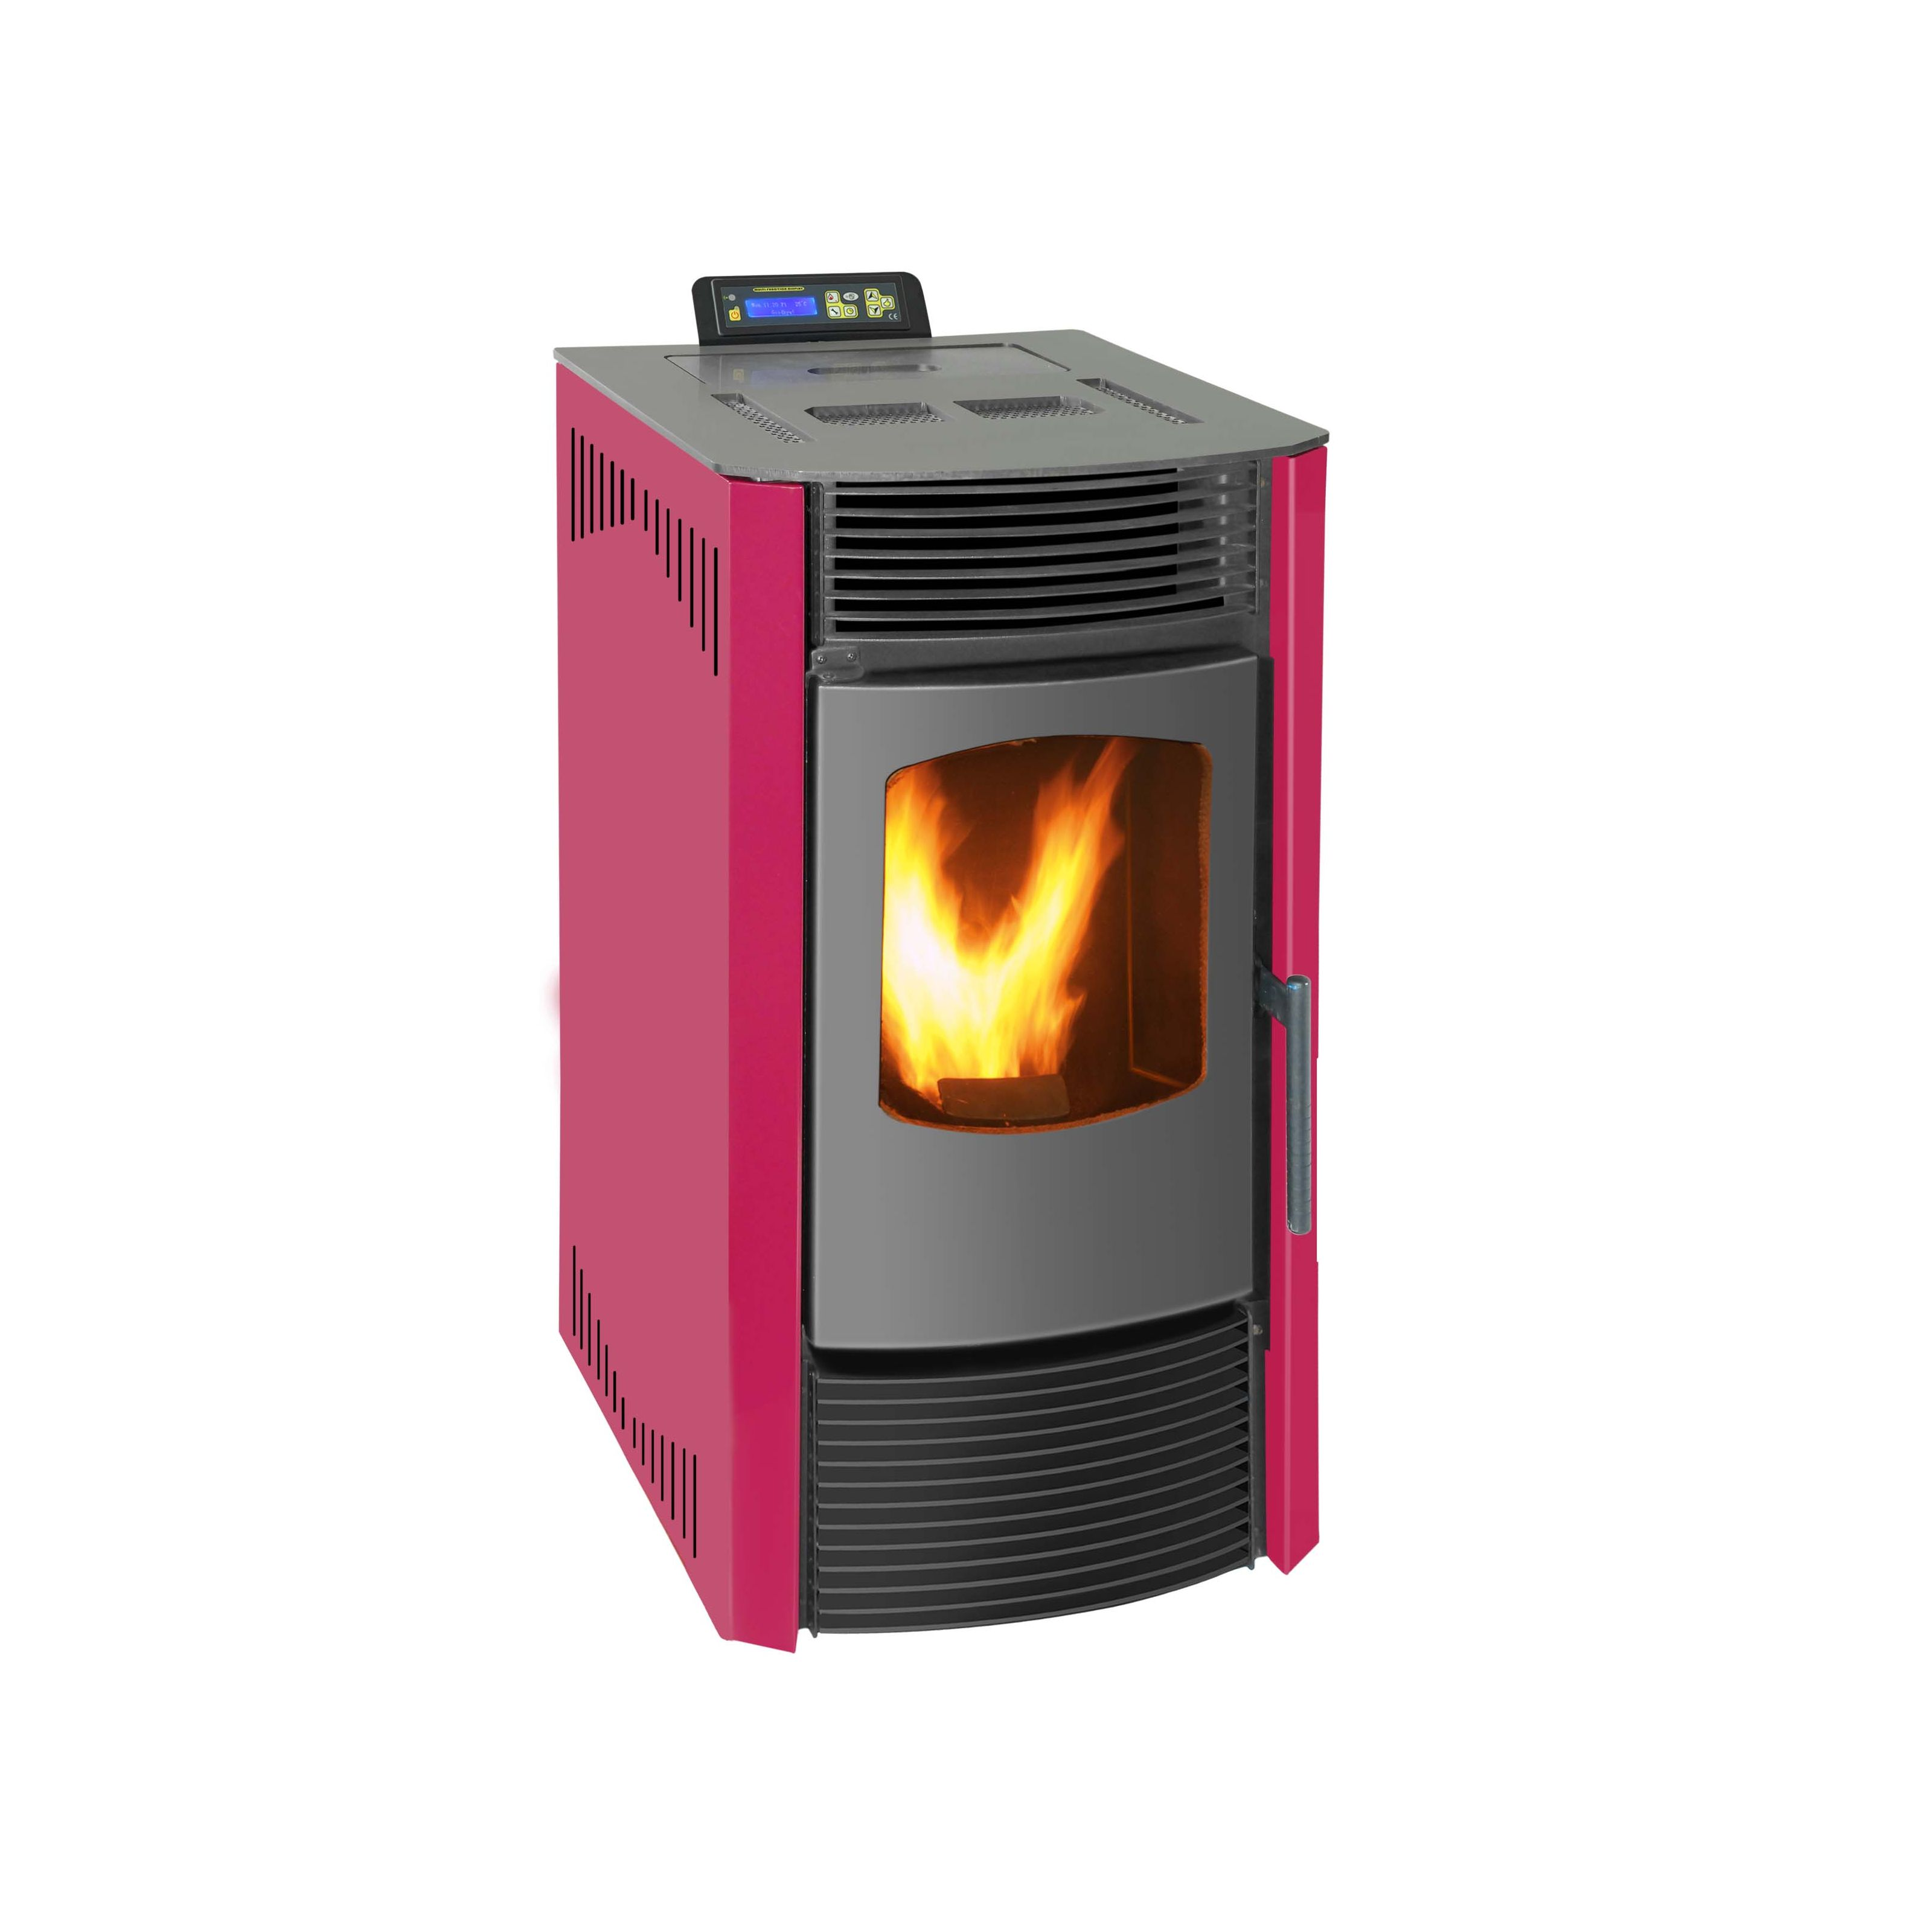 Small modern cheap small fire place, pellet burner fireplace